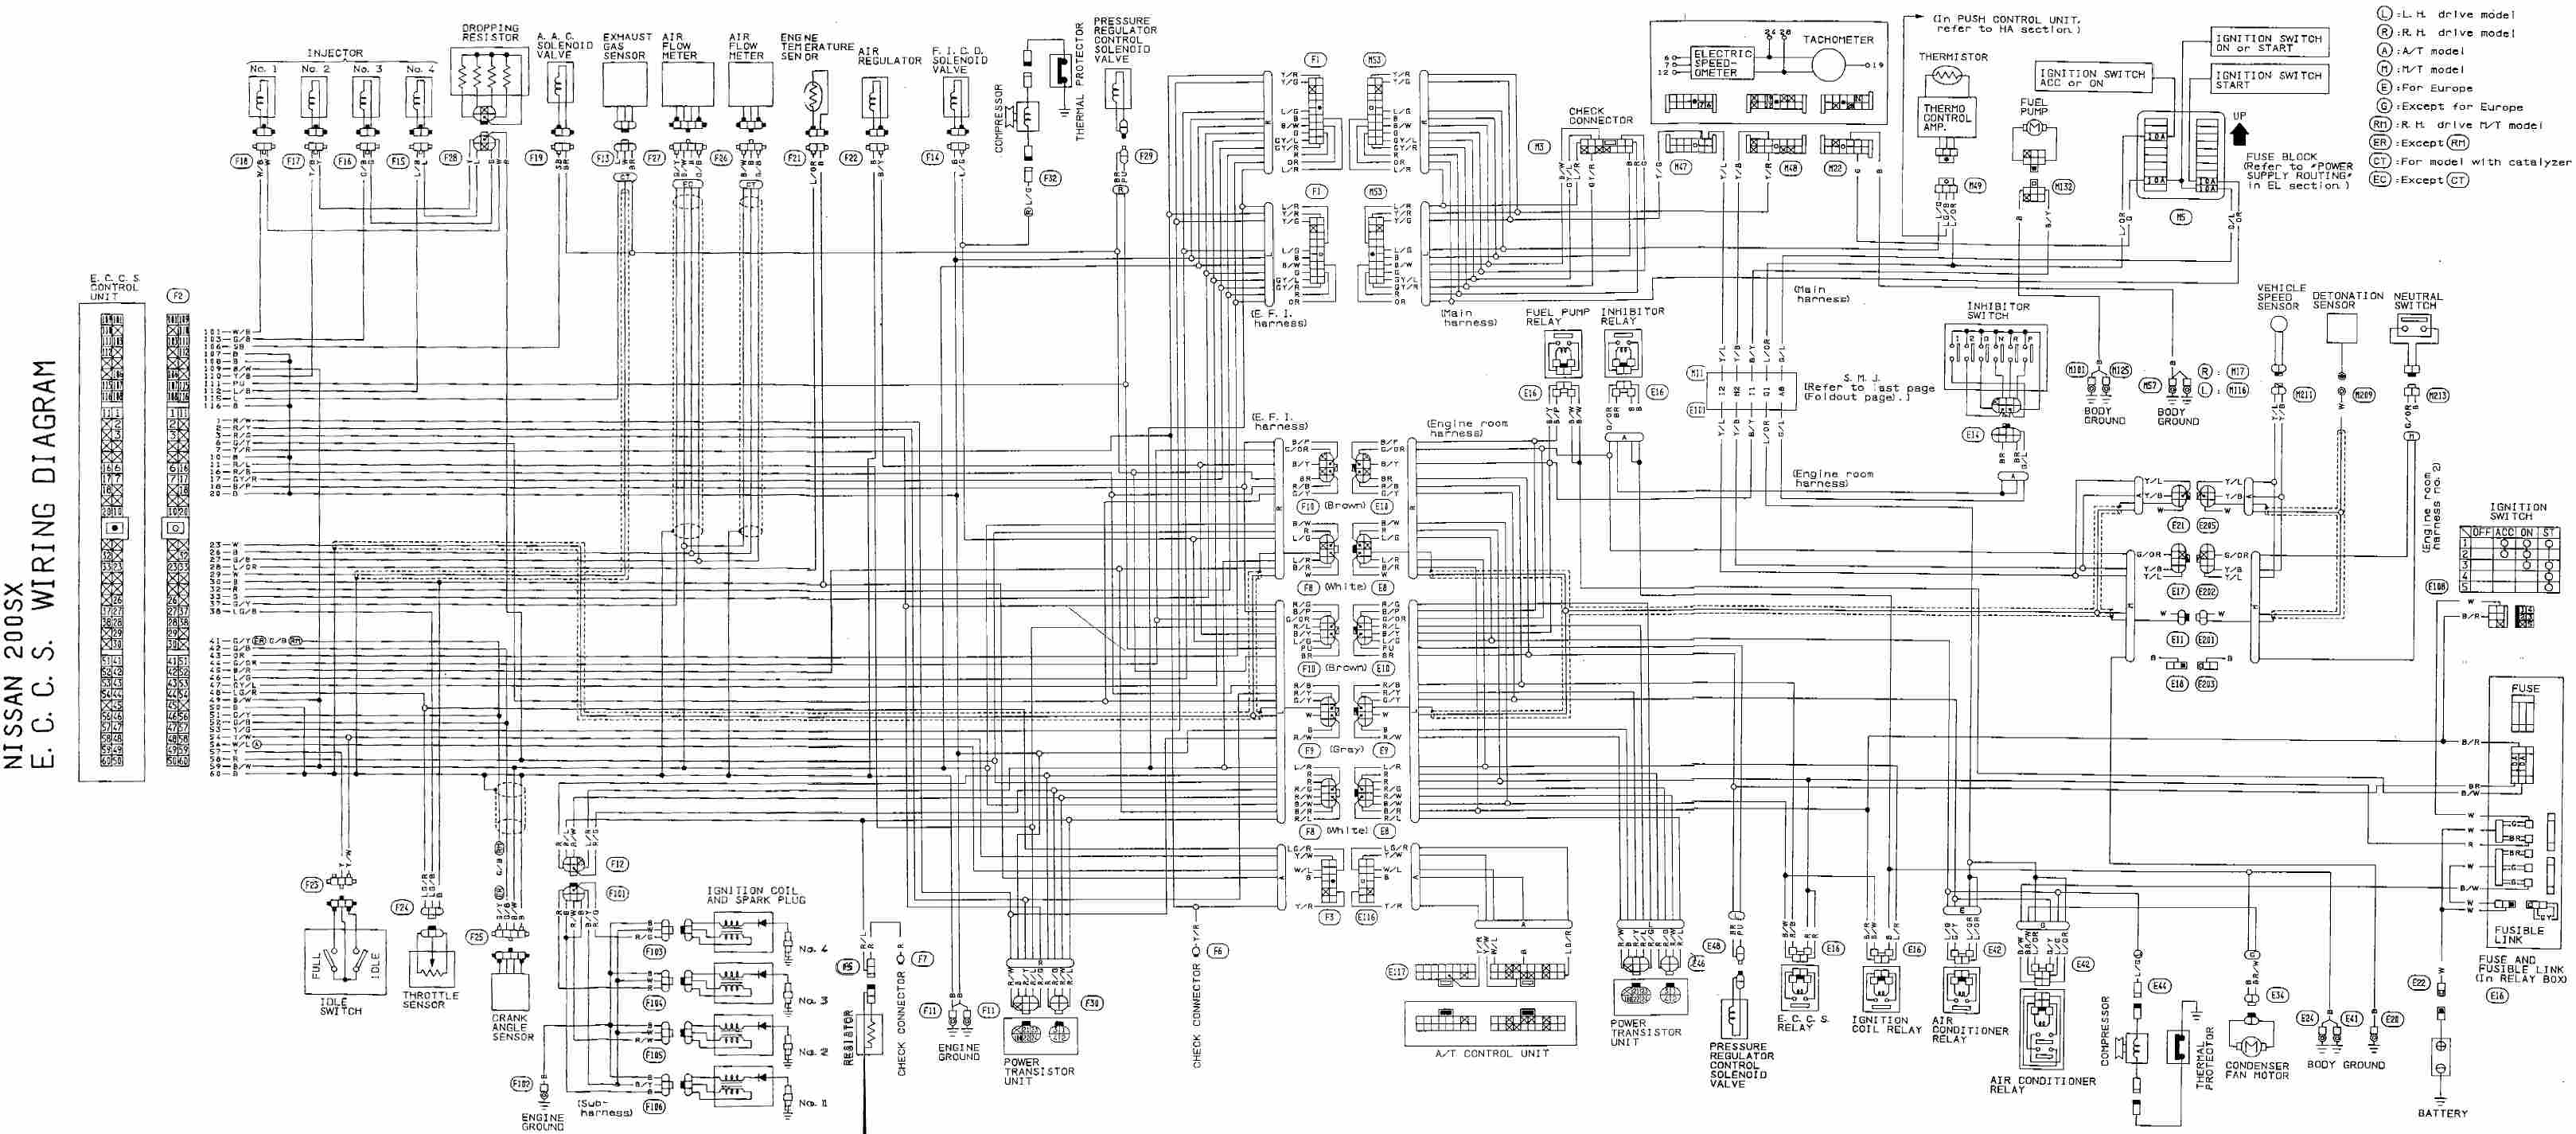 300zx Fuse Diagram Another Blog About Wiring 1990 Nissan Sentra Box Z32 Engine Coil Layout Diagrams U2022 Rh Laurafinlay Co Uk Panel